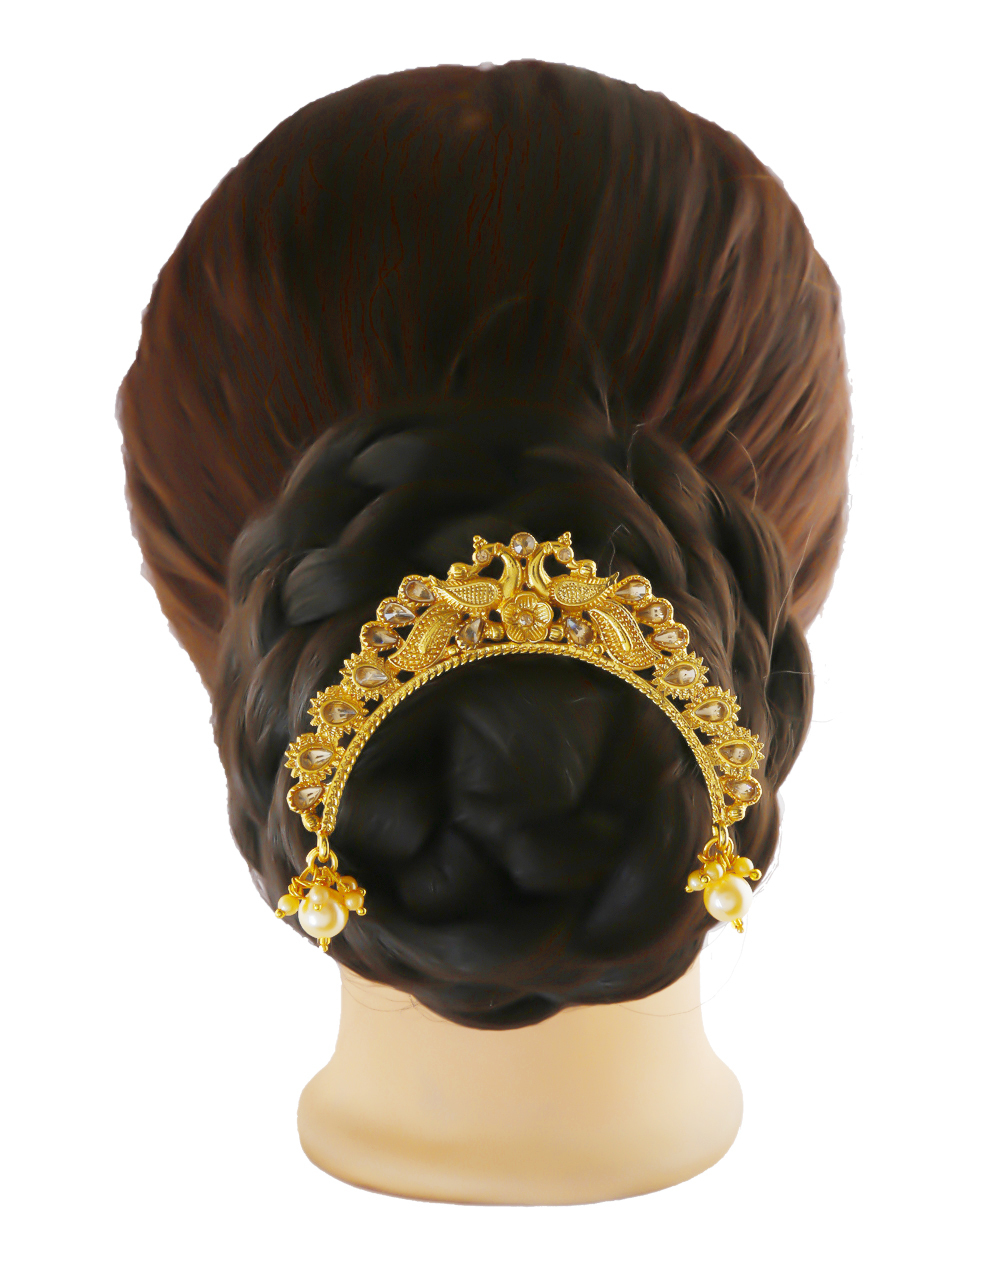 Gold Finish Peacock Design Hair Accessories Brooch